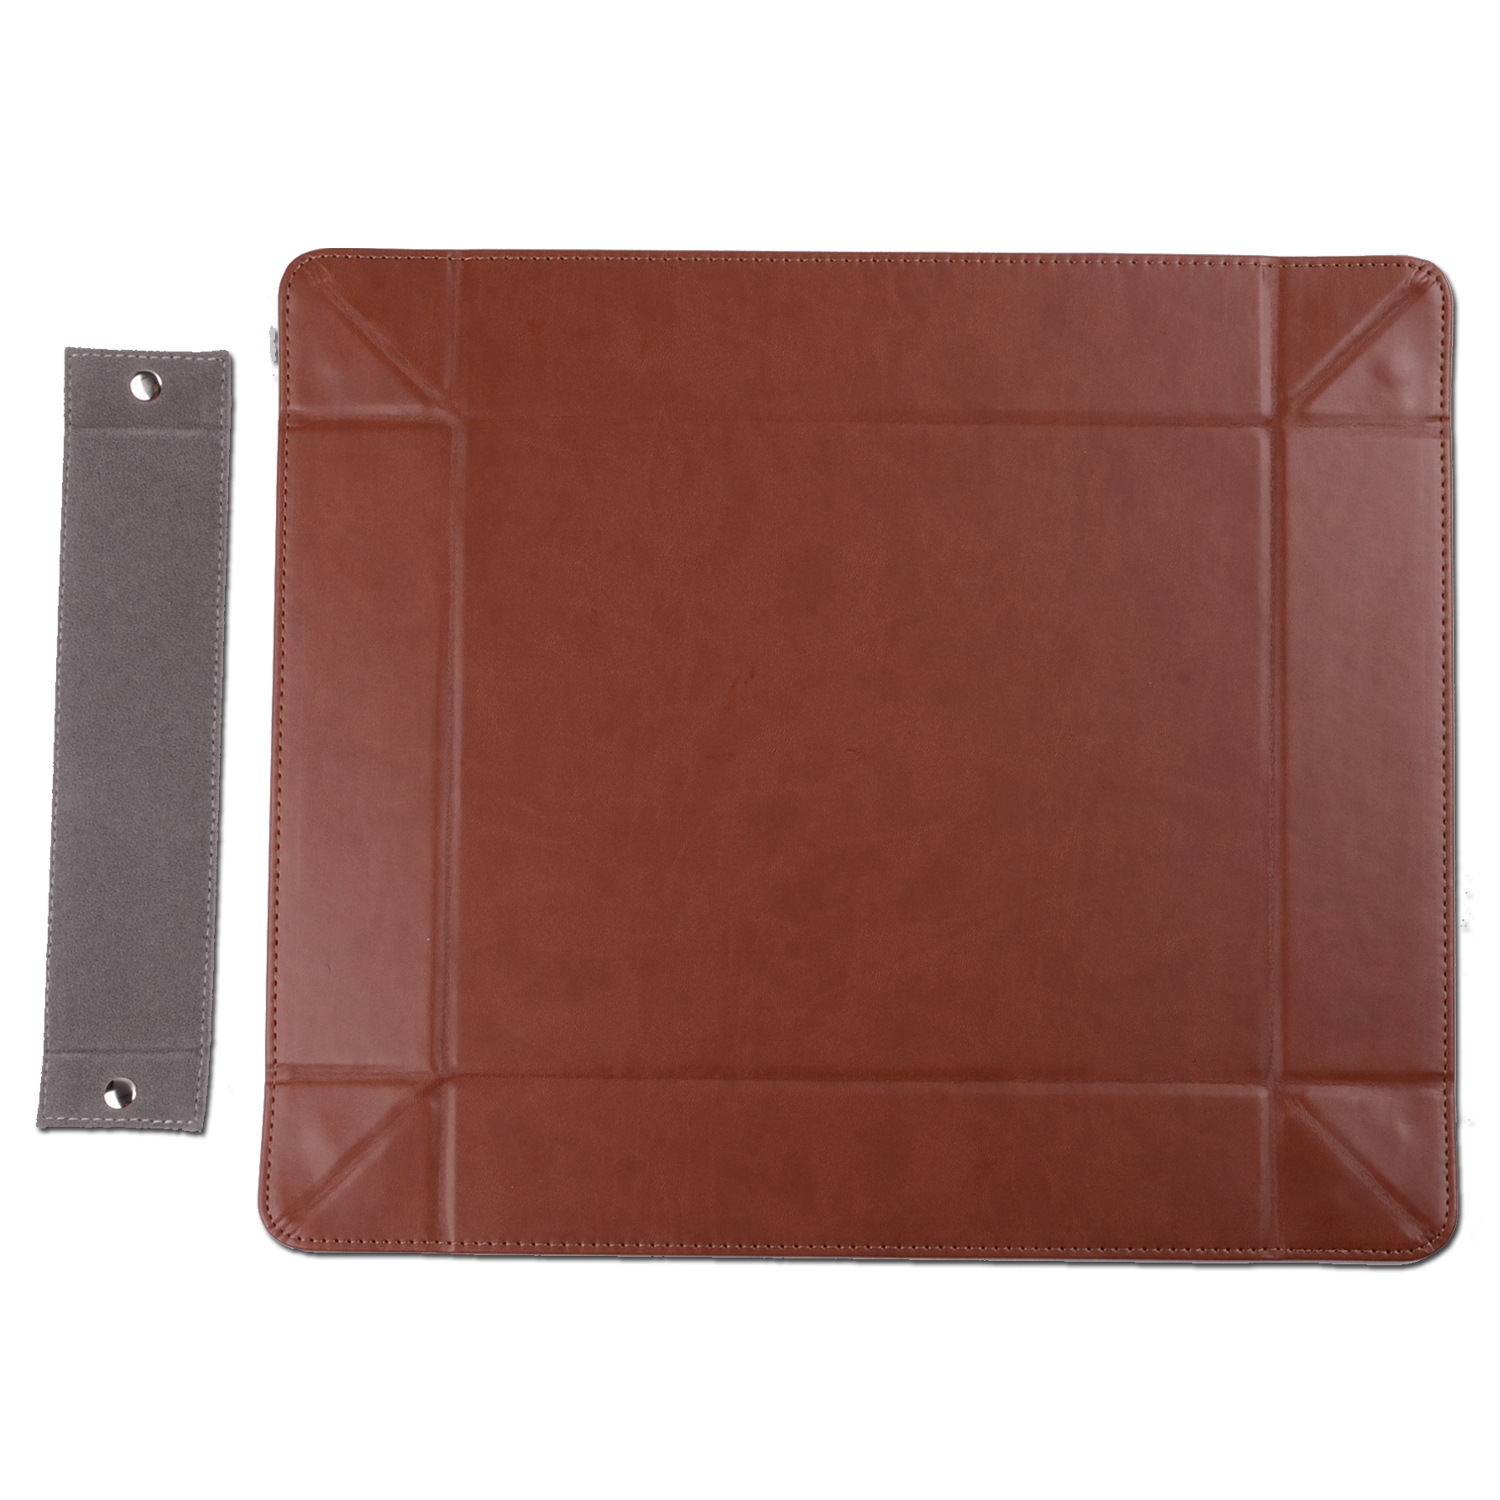 faux leather home table velvet tray money coin folding tray